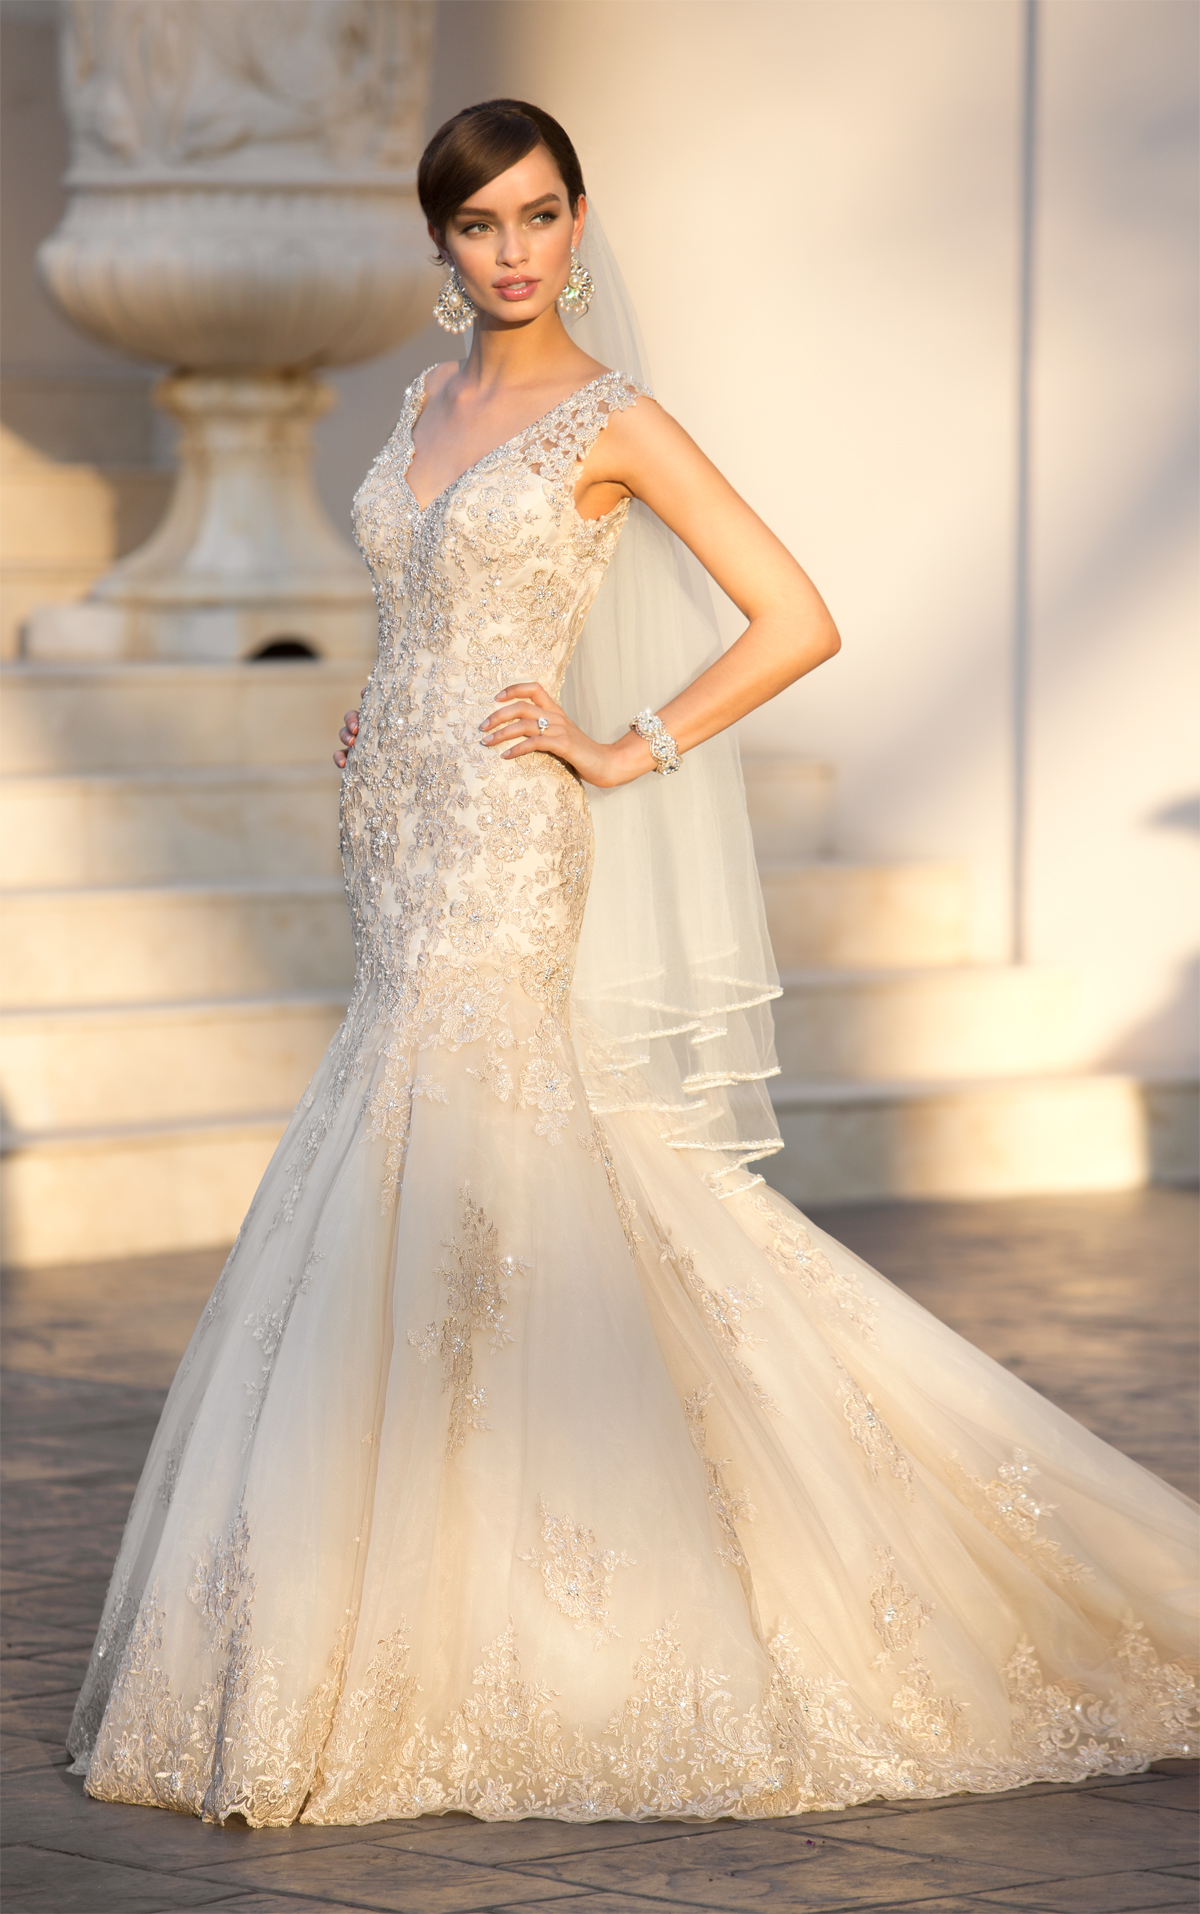 stella-york-wedding-dresses-2014-11-01152014